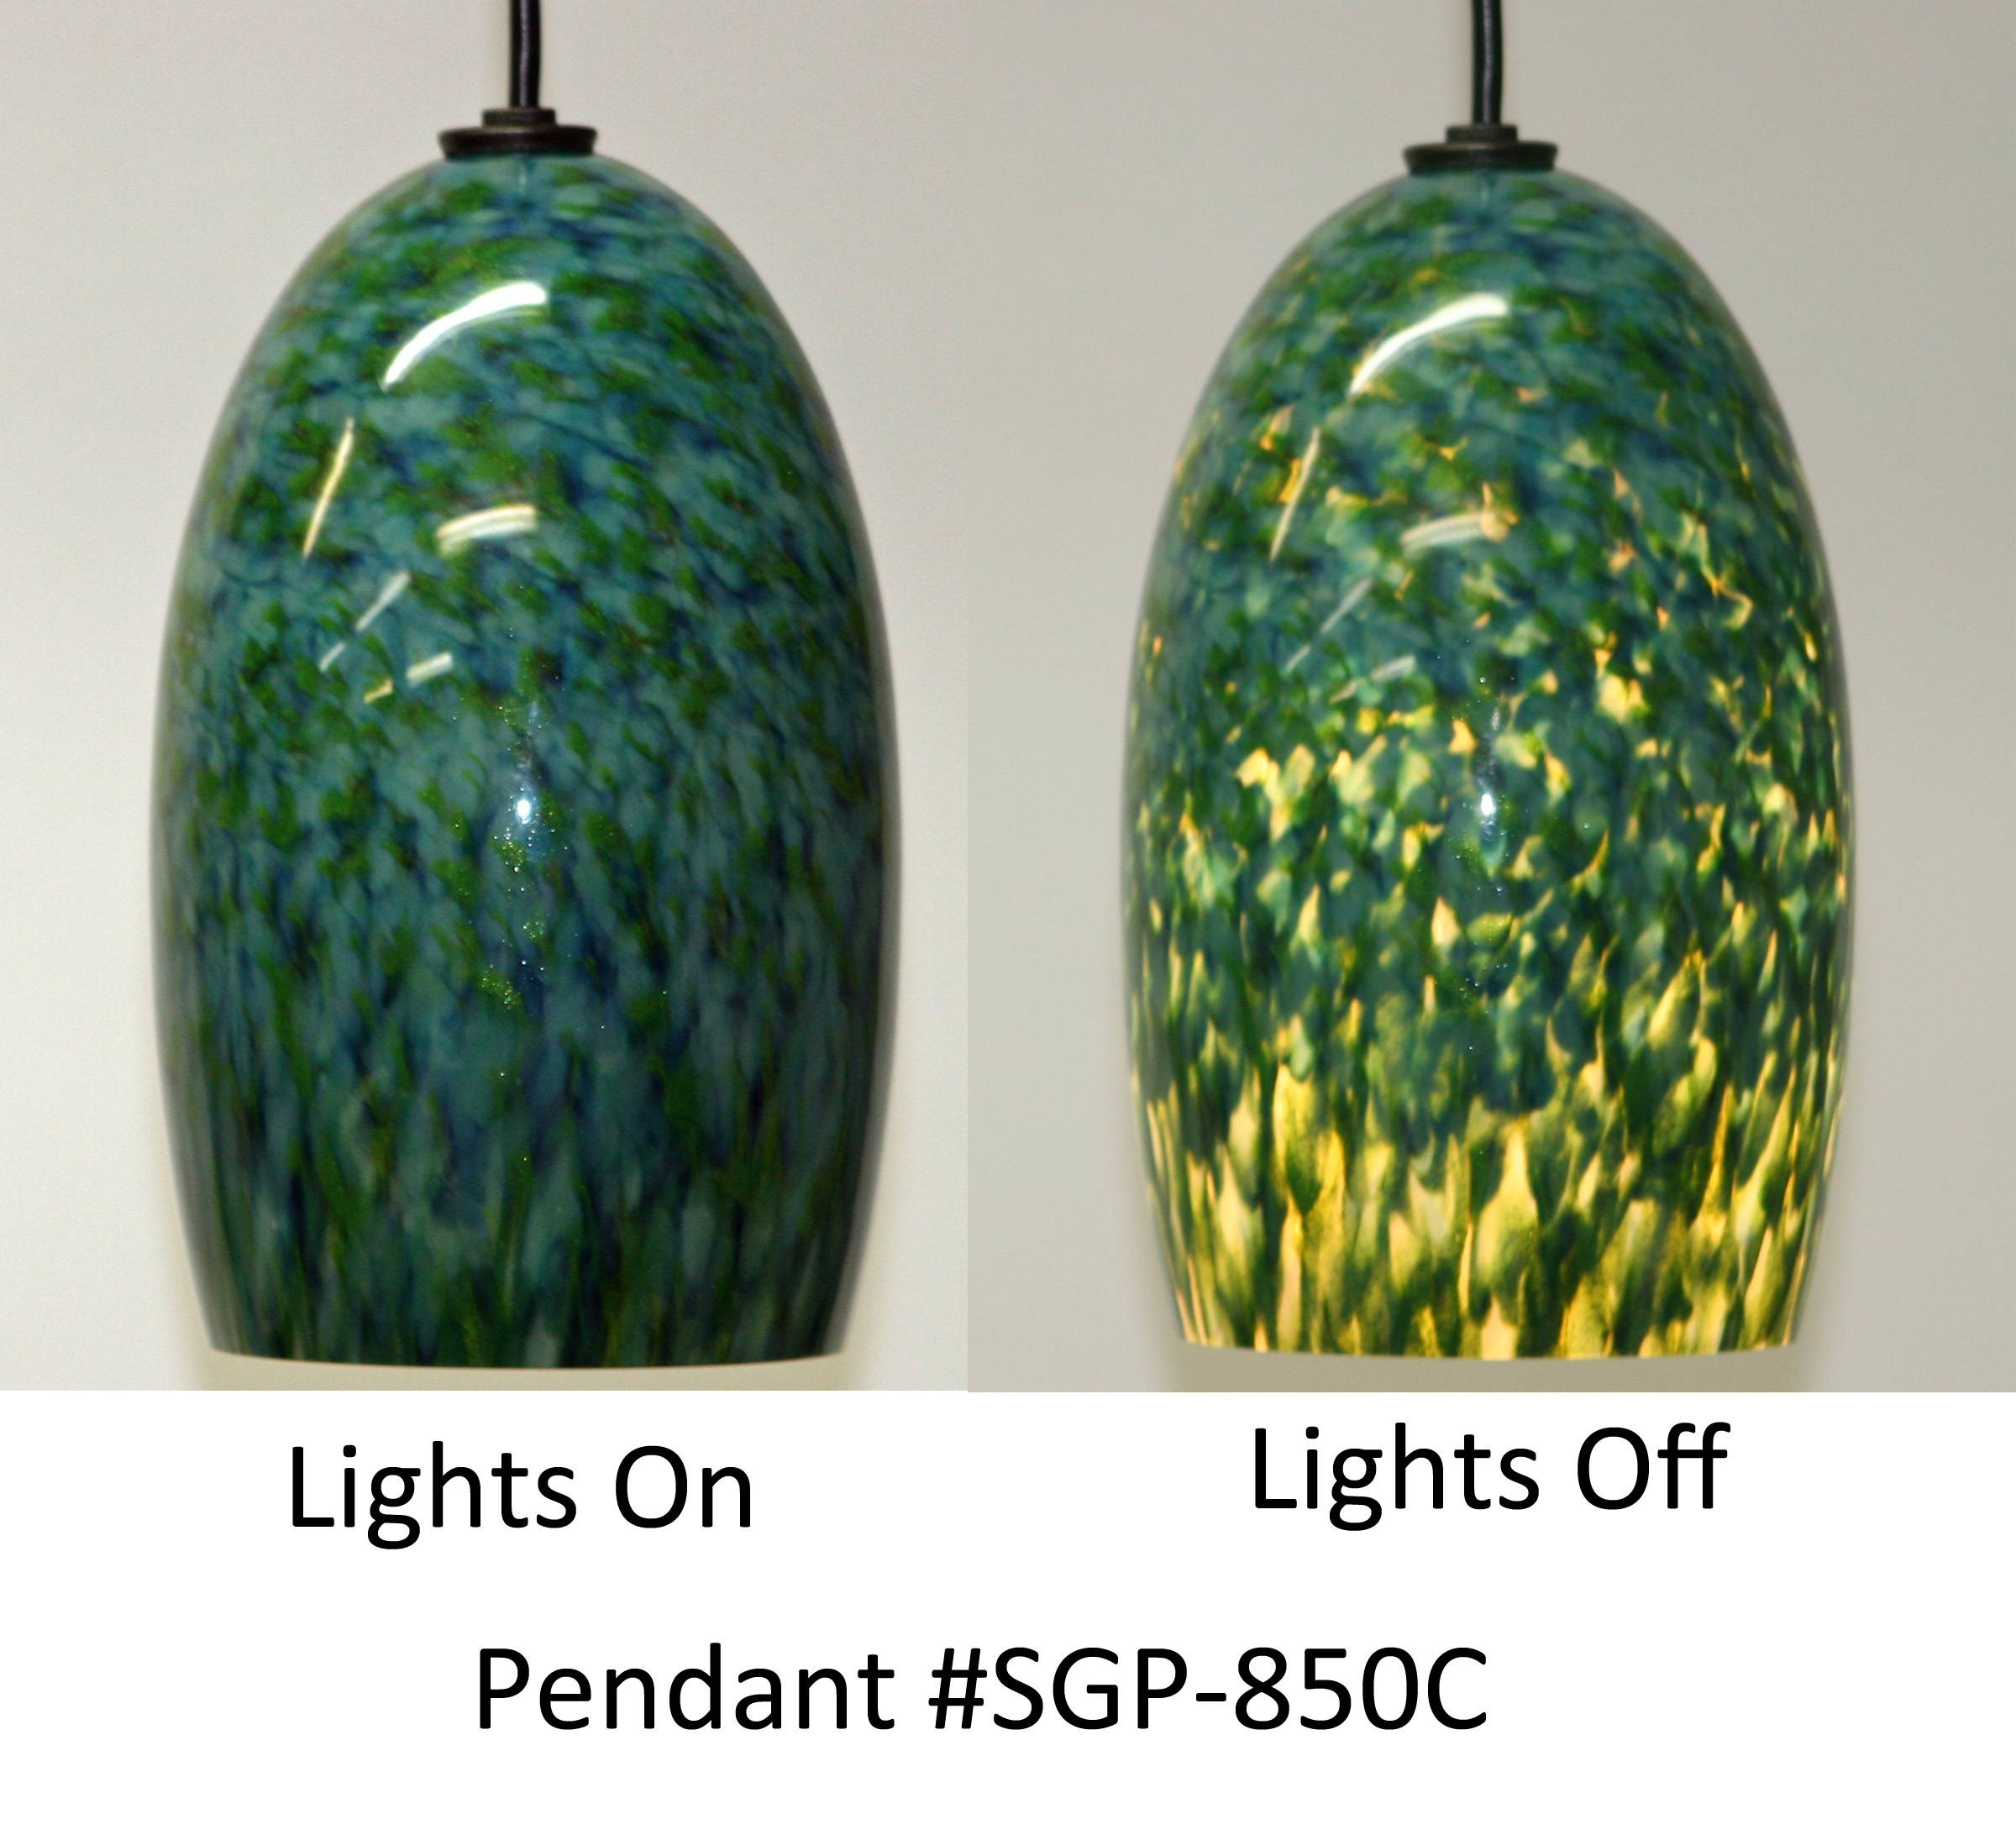 Peacock Feathers Pendant Lights | Artisan Crafted Lighting intended for Artisan Glass Pendant Lights (Image 21 of 23)